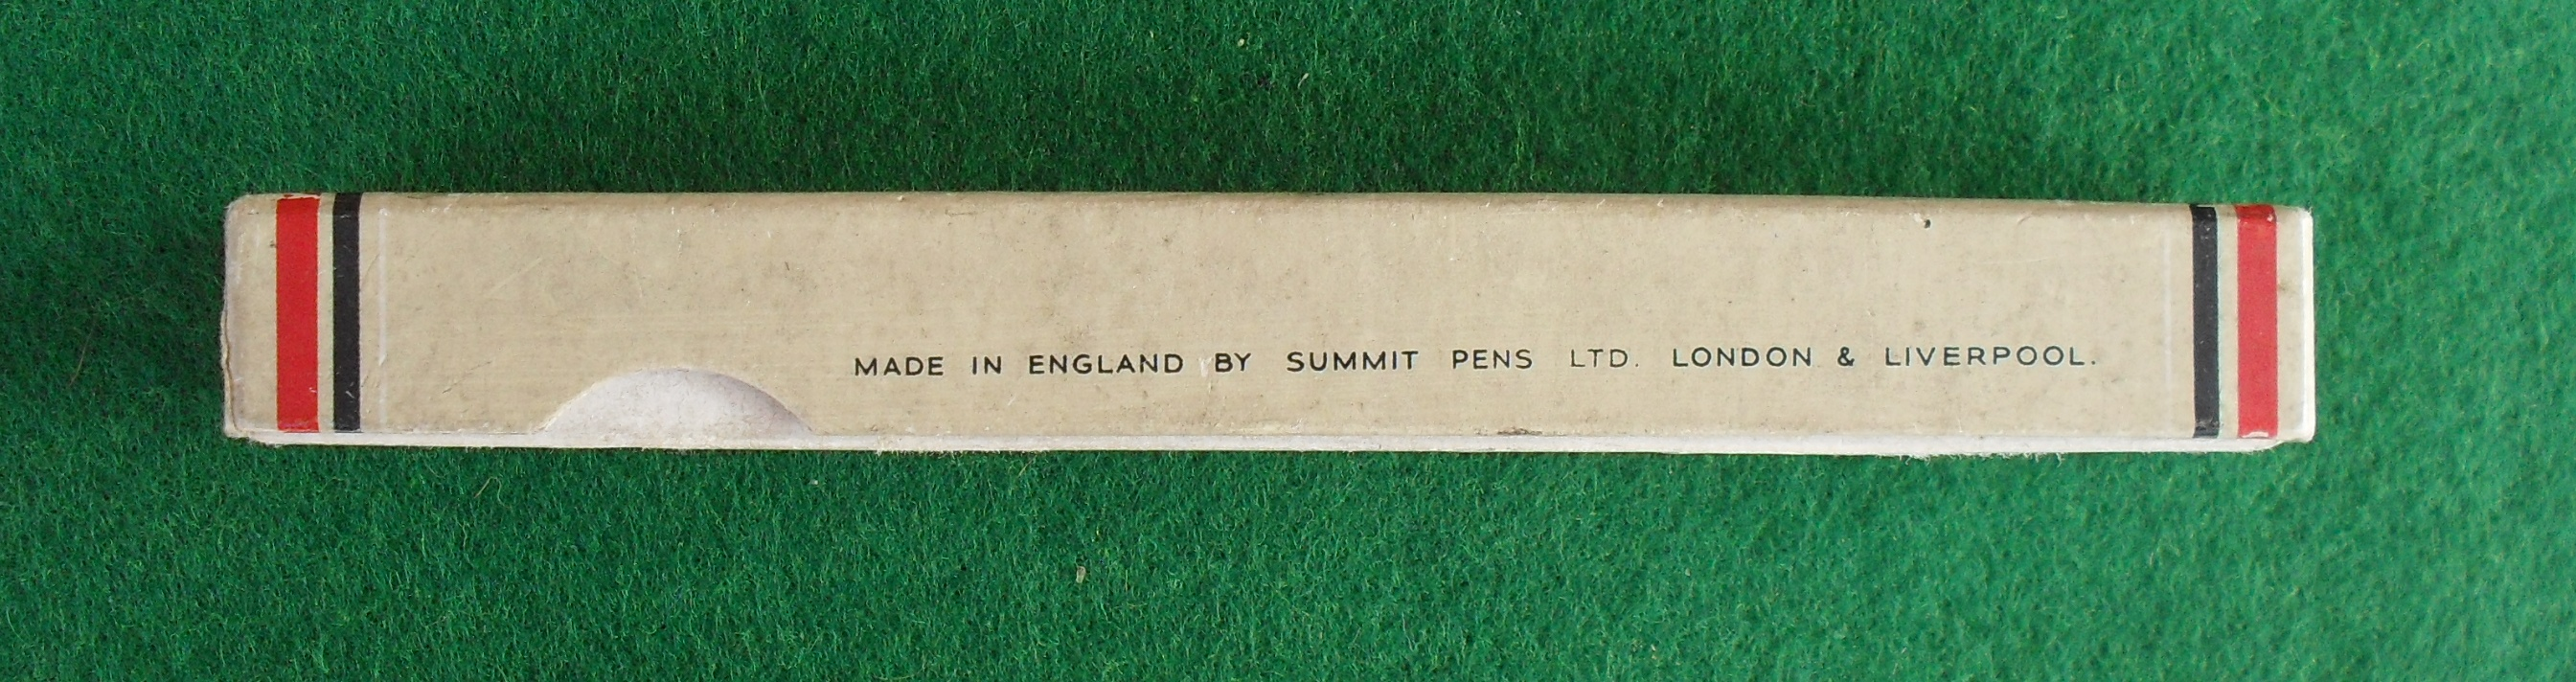 Summit Pen box - post WW2-side.JPG